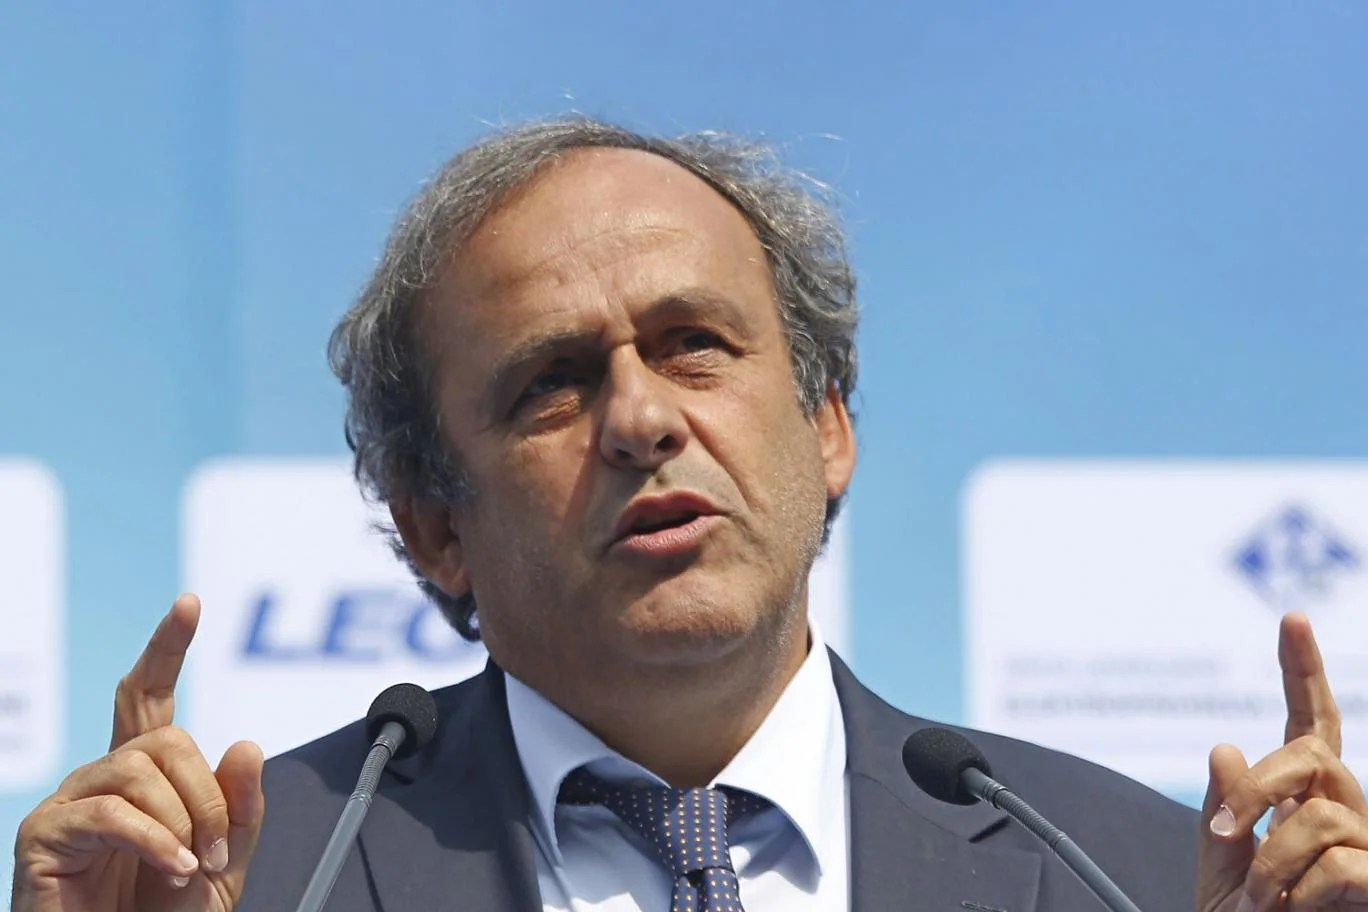 Payment questions: Platini said the payment was for work for Fifa AP